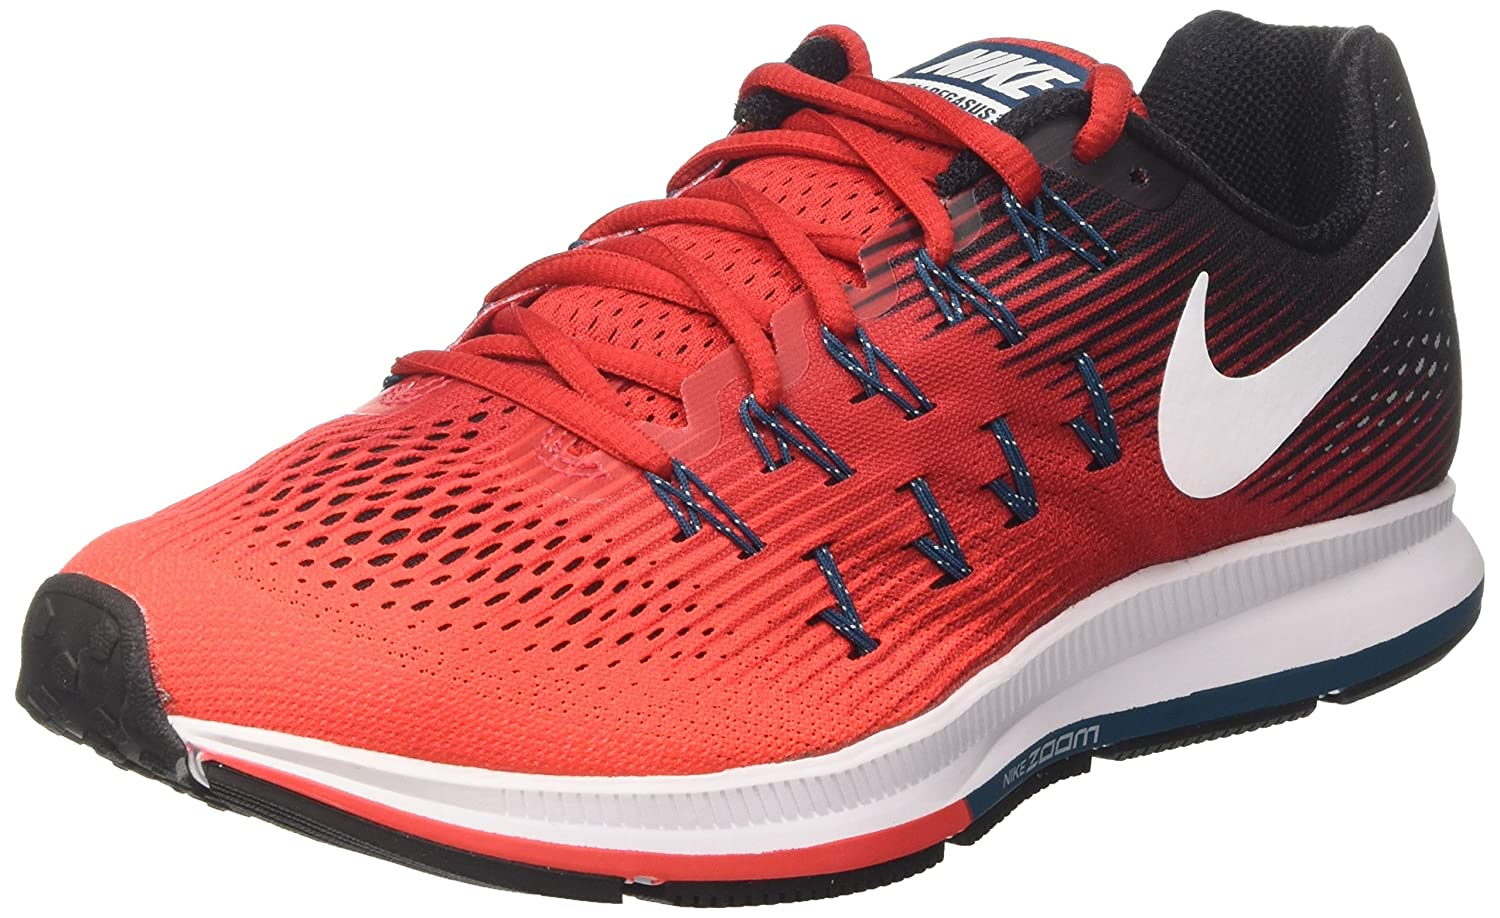 3ad1e7d7b6f4 Nike Men s Air Zoom Pegasus 33 Training Shoes  Amazon.co.uk  Shoes ...